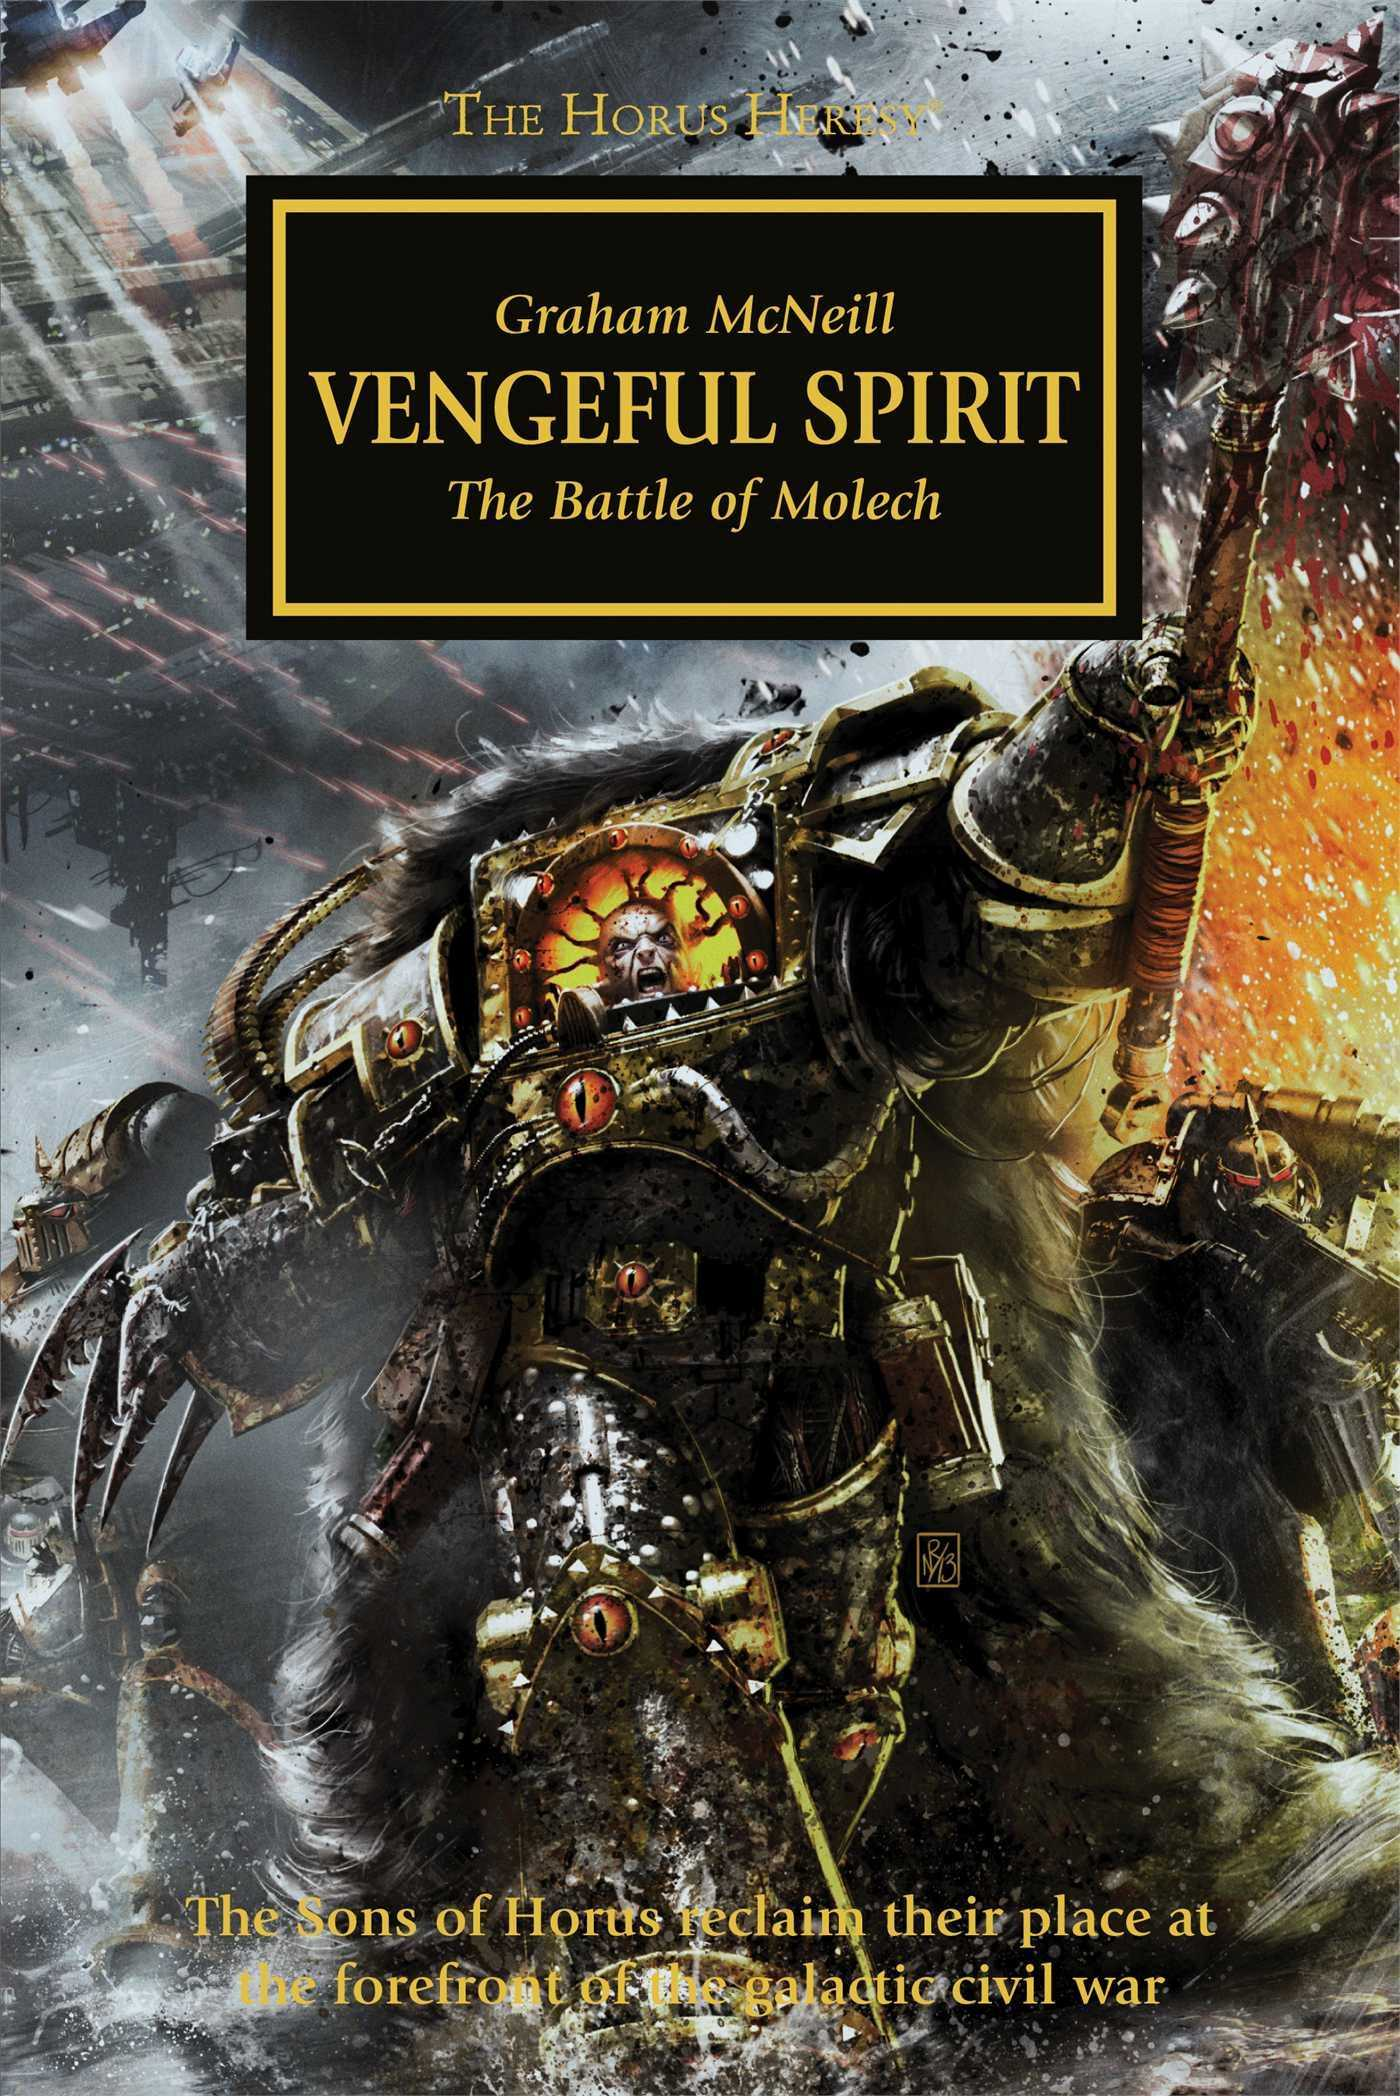 Warhammer 40k - The Horus Heresy - Vengeful Spirit - Graham McNeill